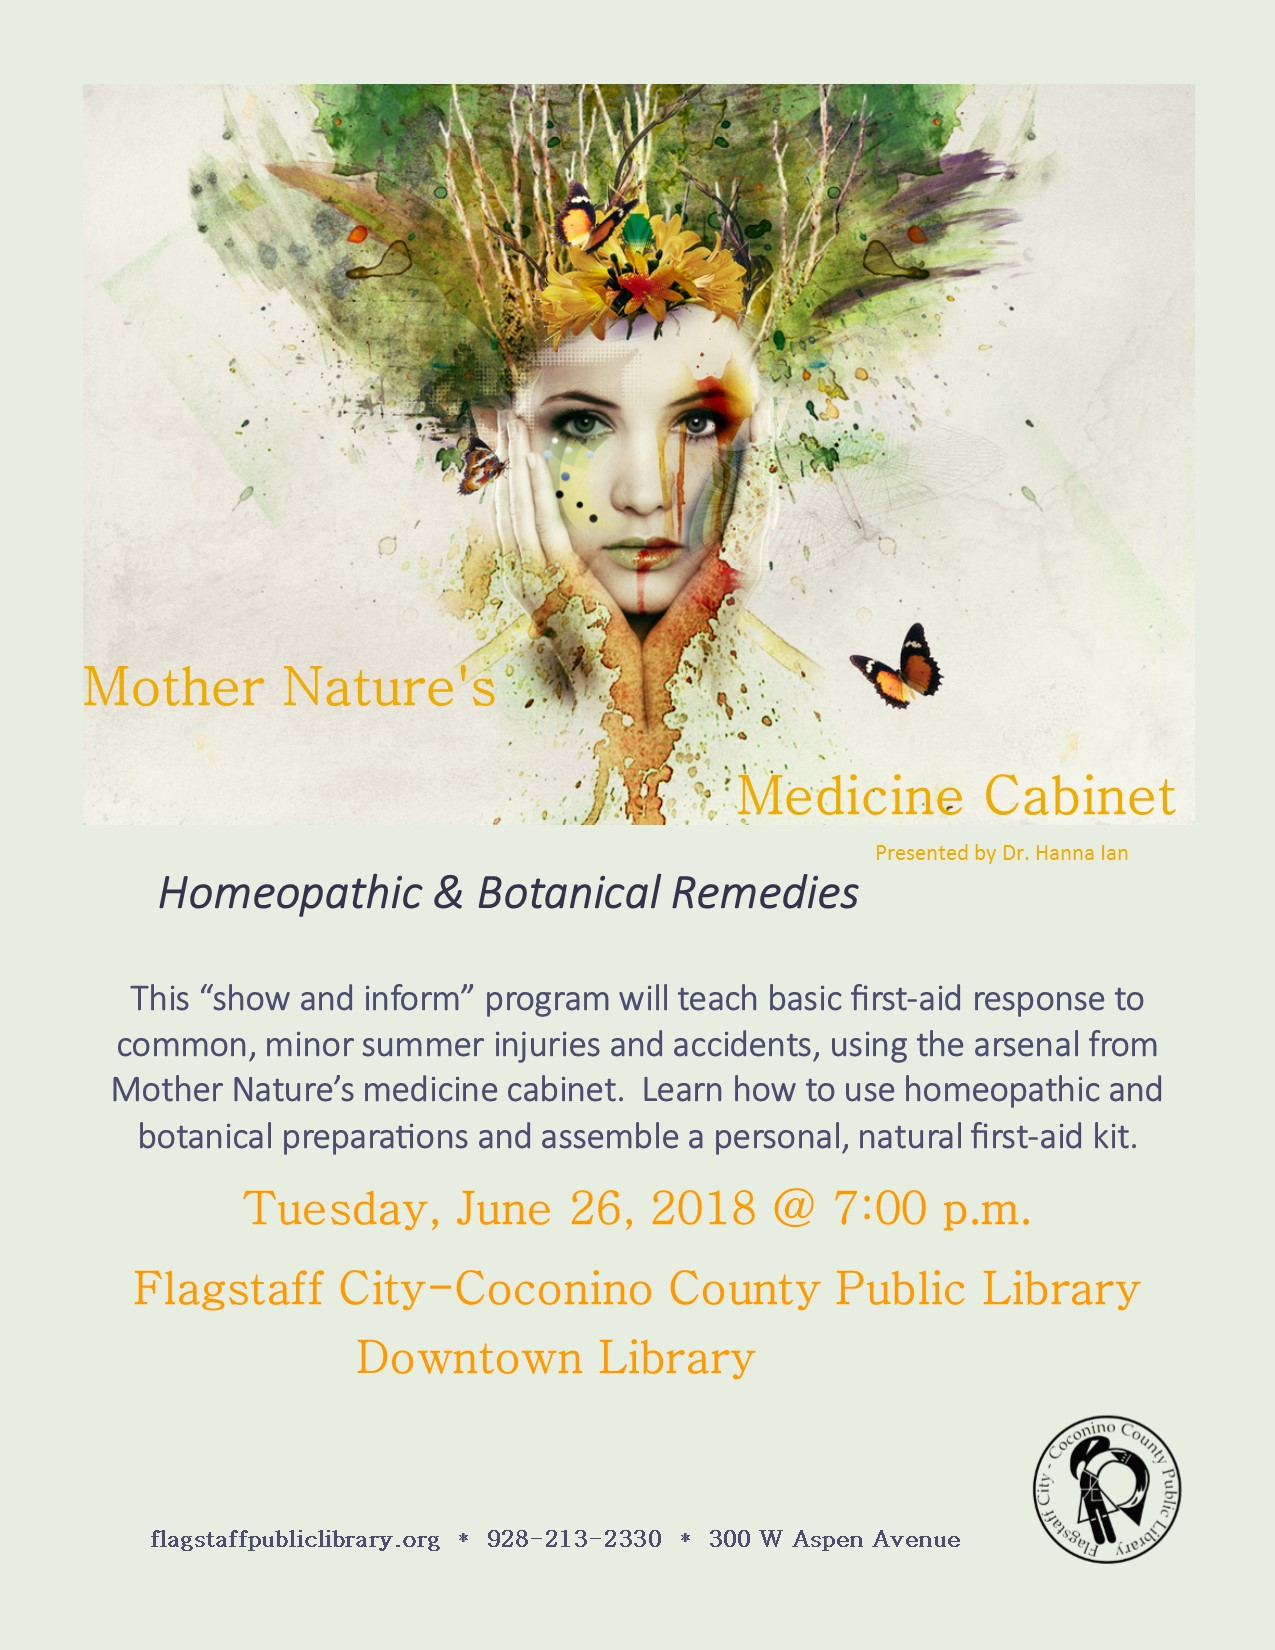 Mother Nature's Medicine Cabinet: Homeopathic & Botanical Remedies